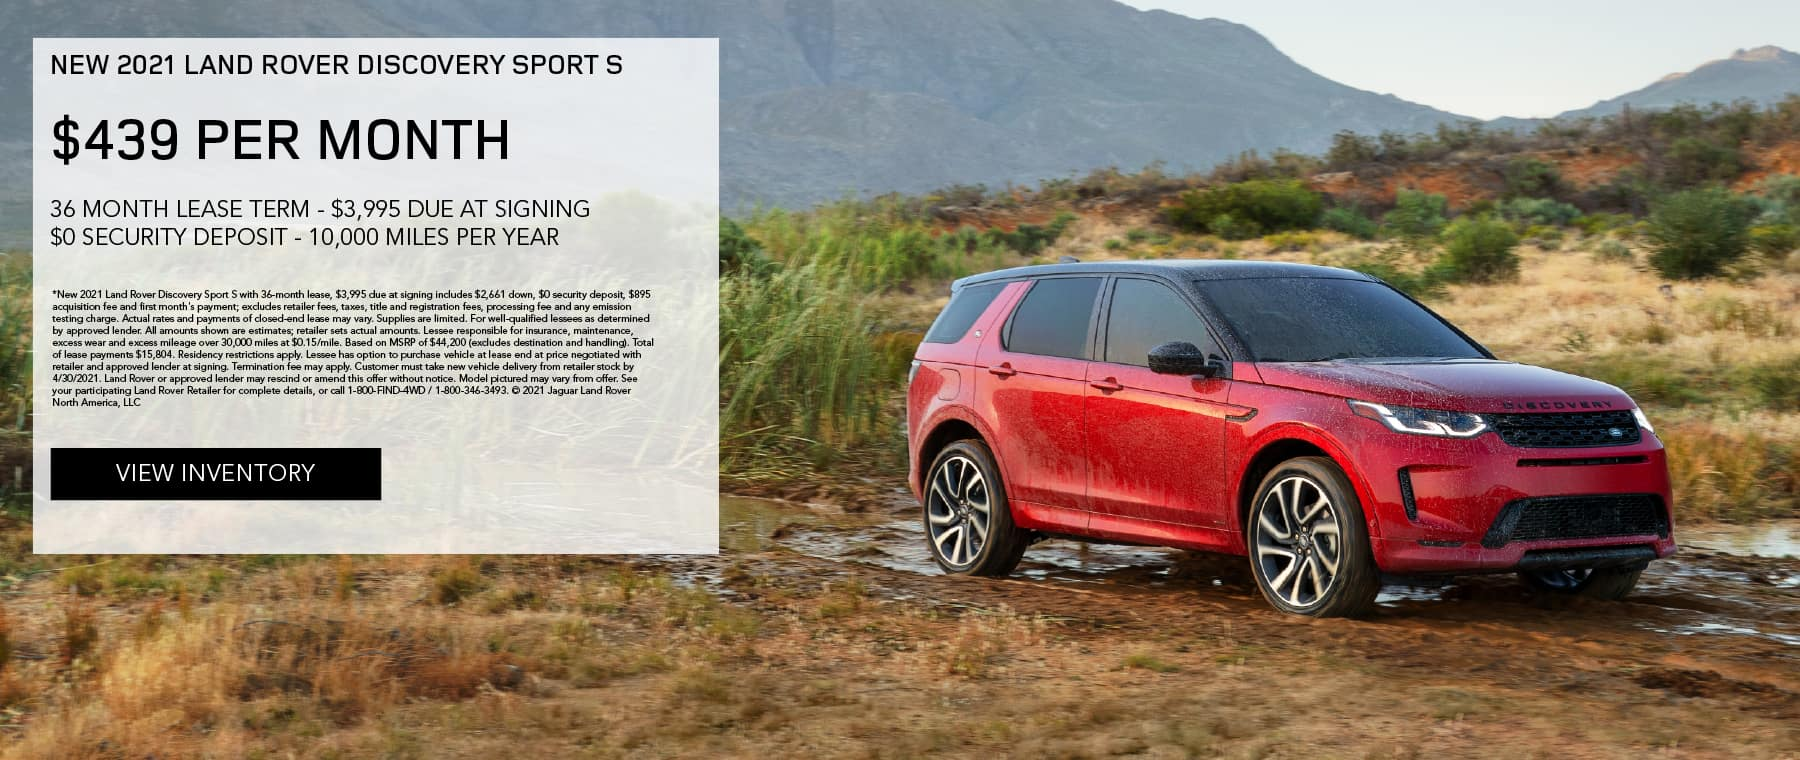 NEW 2021 LAND ROVER DISCOVERY SPORT S. $439 PER MONTH. 36 MONTH LEASE TERM. $3,995 CASH DUE AT SIGNING. $0 SECURITY DEPOSIT. 10,000 MILES PER YEAR. EXCLUDES RETAILER FEES, TAXES, TITLE AND REGISTRATION FEES, PROCESSING FEE AND ANY EMISSION TESTING CHARGE. ENDS 4/30/2021. VIEW INVENTORY. RED LAND ROVER DISCOVERY SPORT PARKED ON DIRT ROAD.